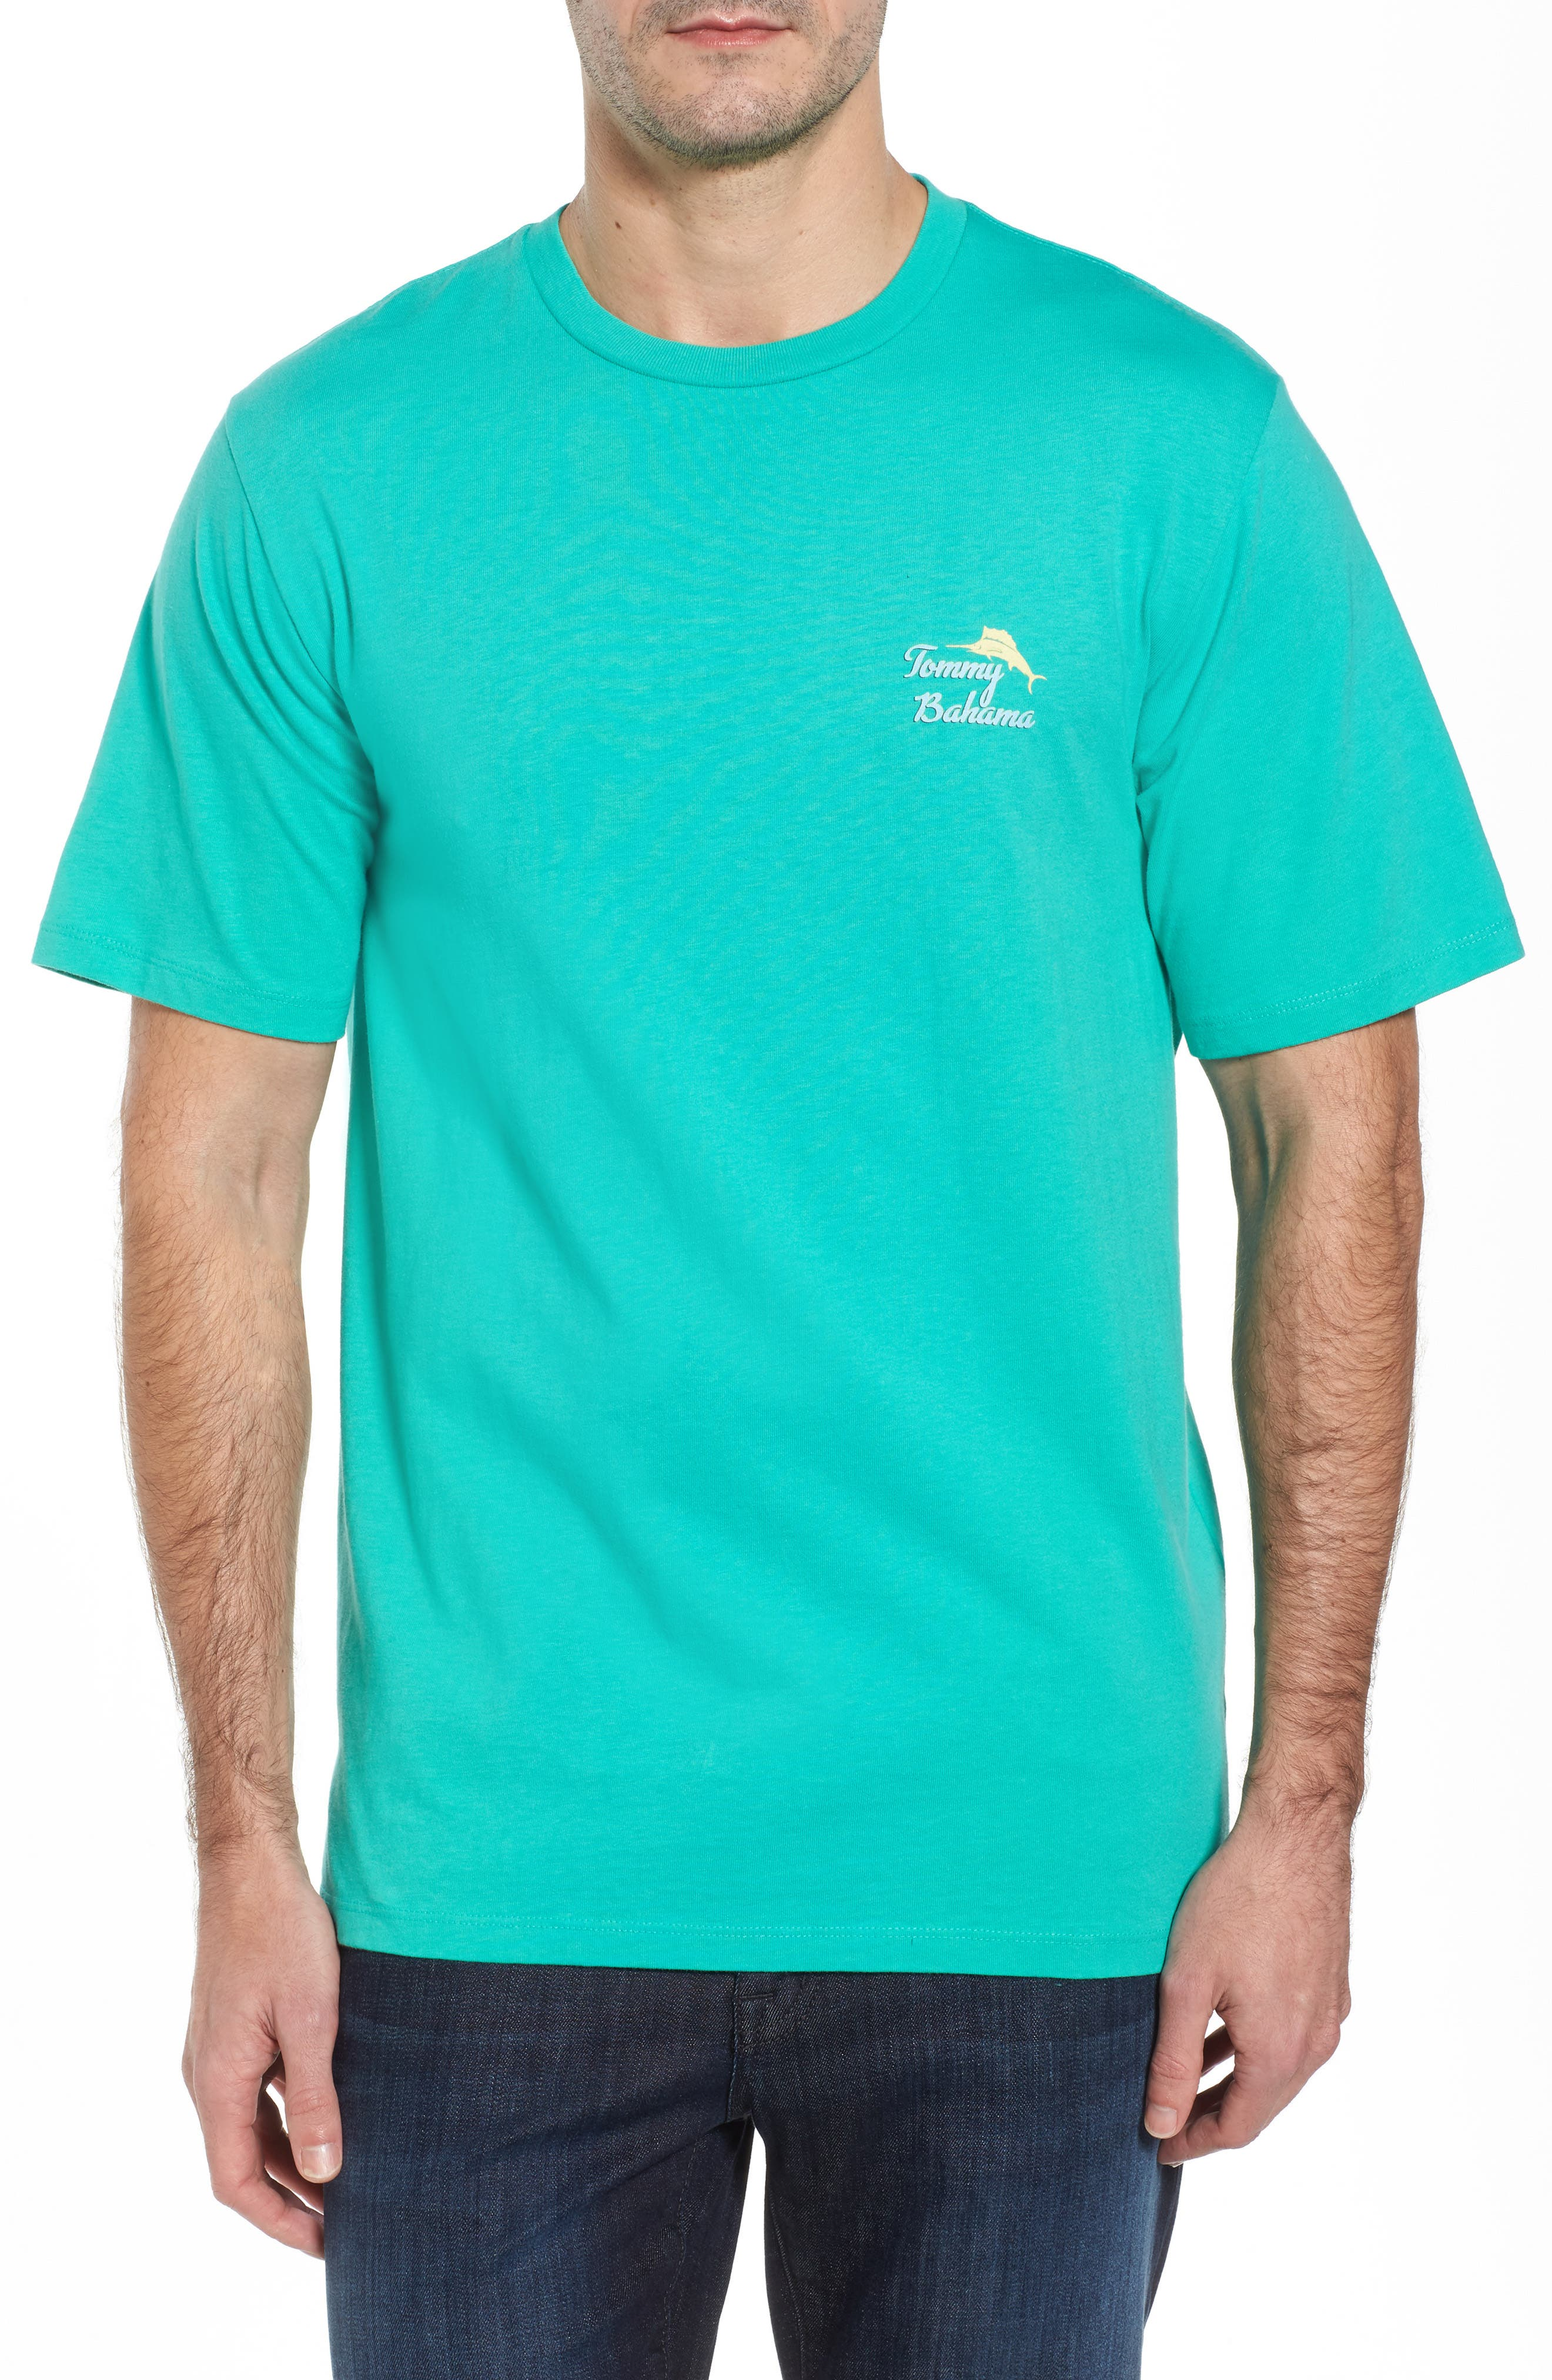 First Class Seat T-Shirt,                         Main,                         color, 300